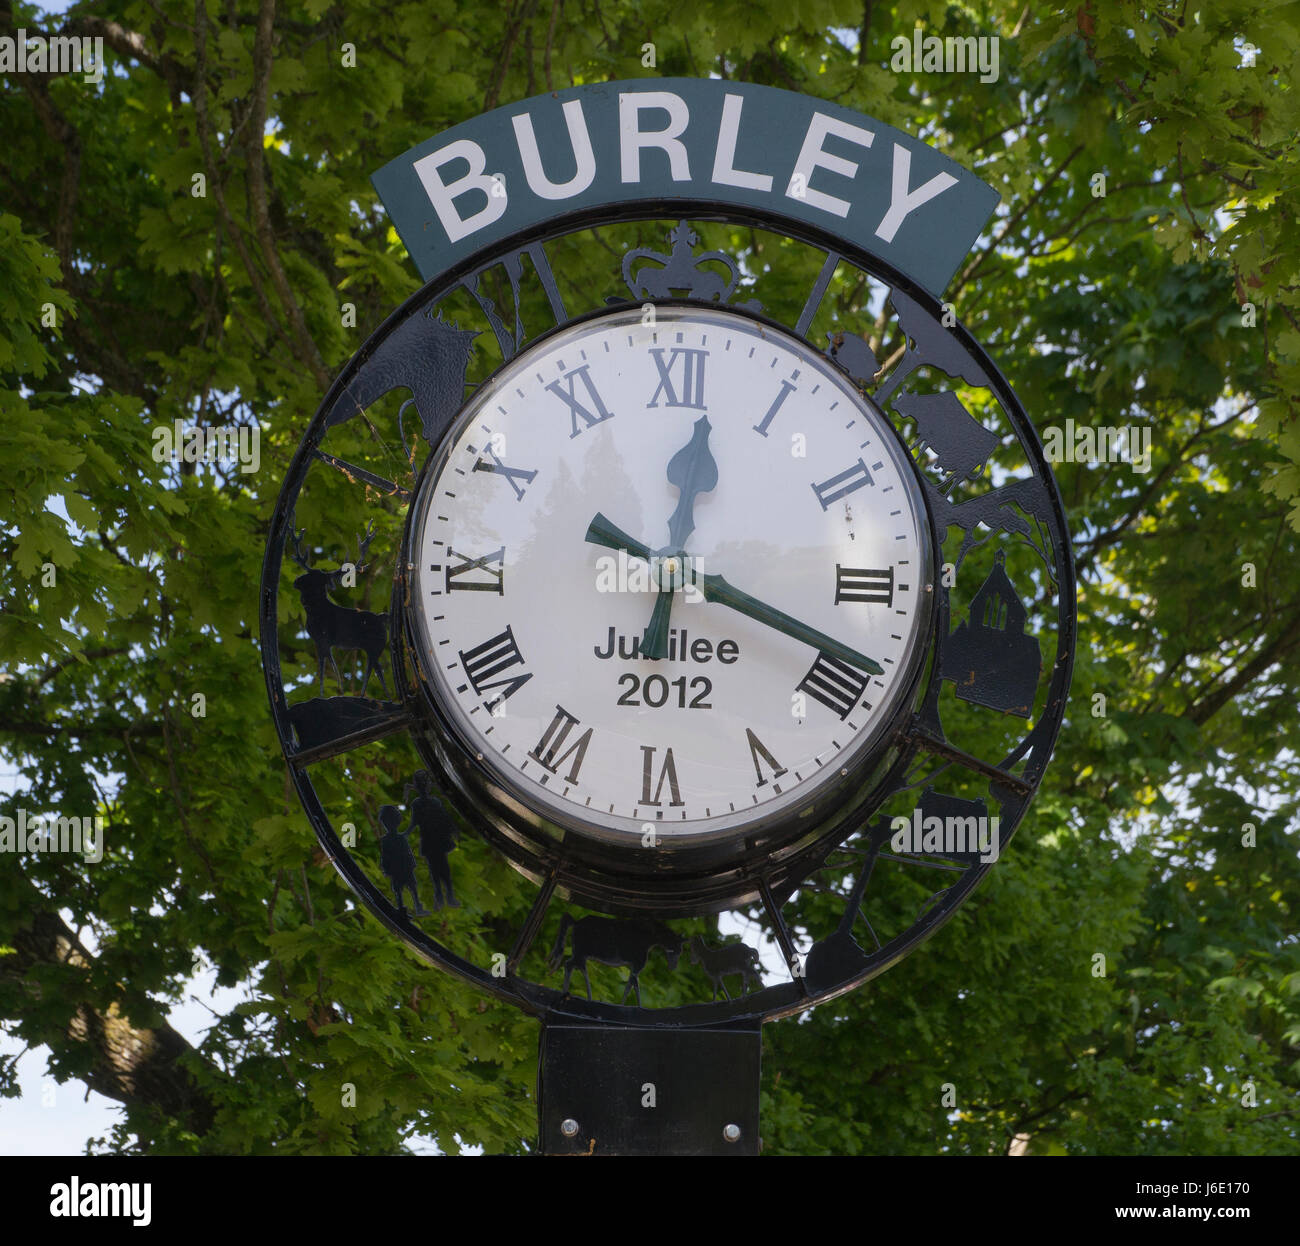 Jubilee Clock ,Burley, New Forest ,Hampshire ,England - Stock Image